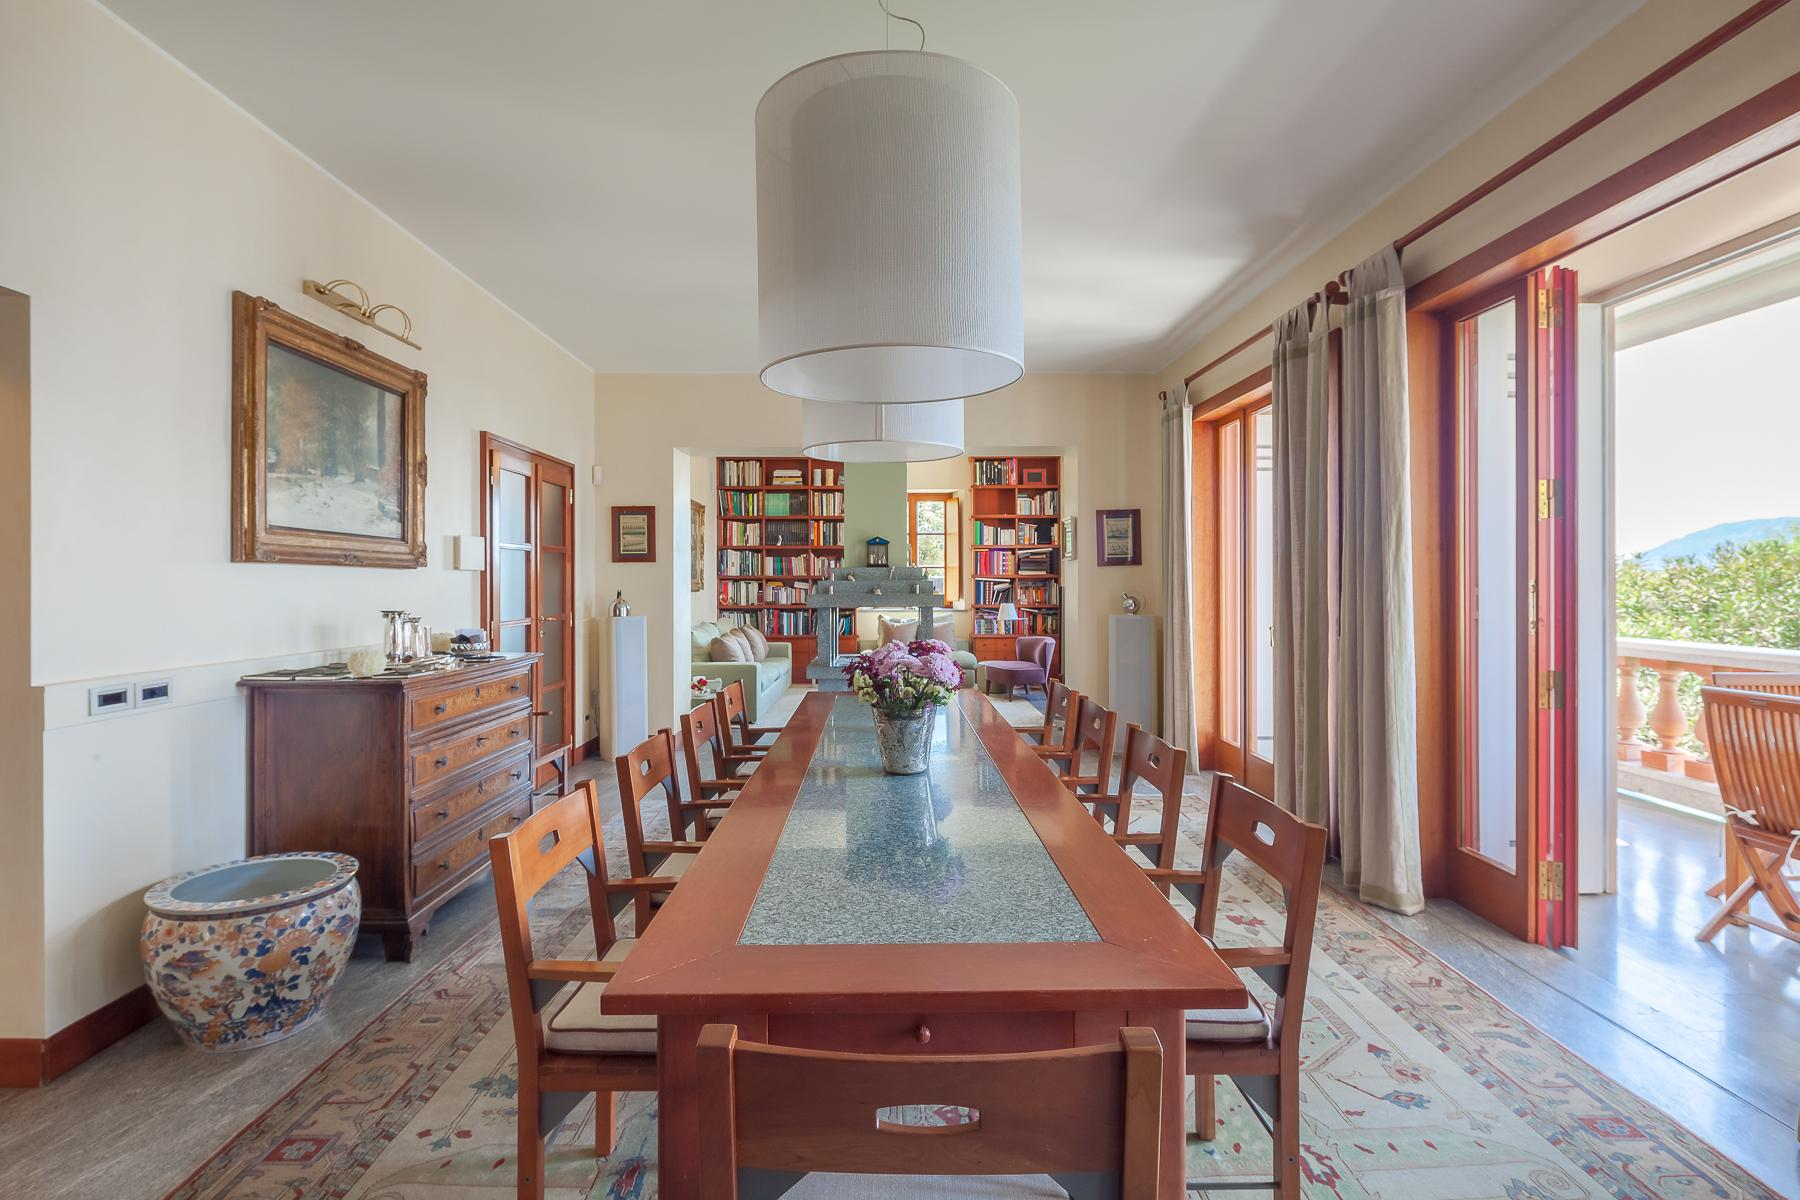 Villa with access to the lake designed and built by the architect Aldo Rossi - 14